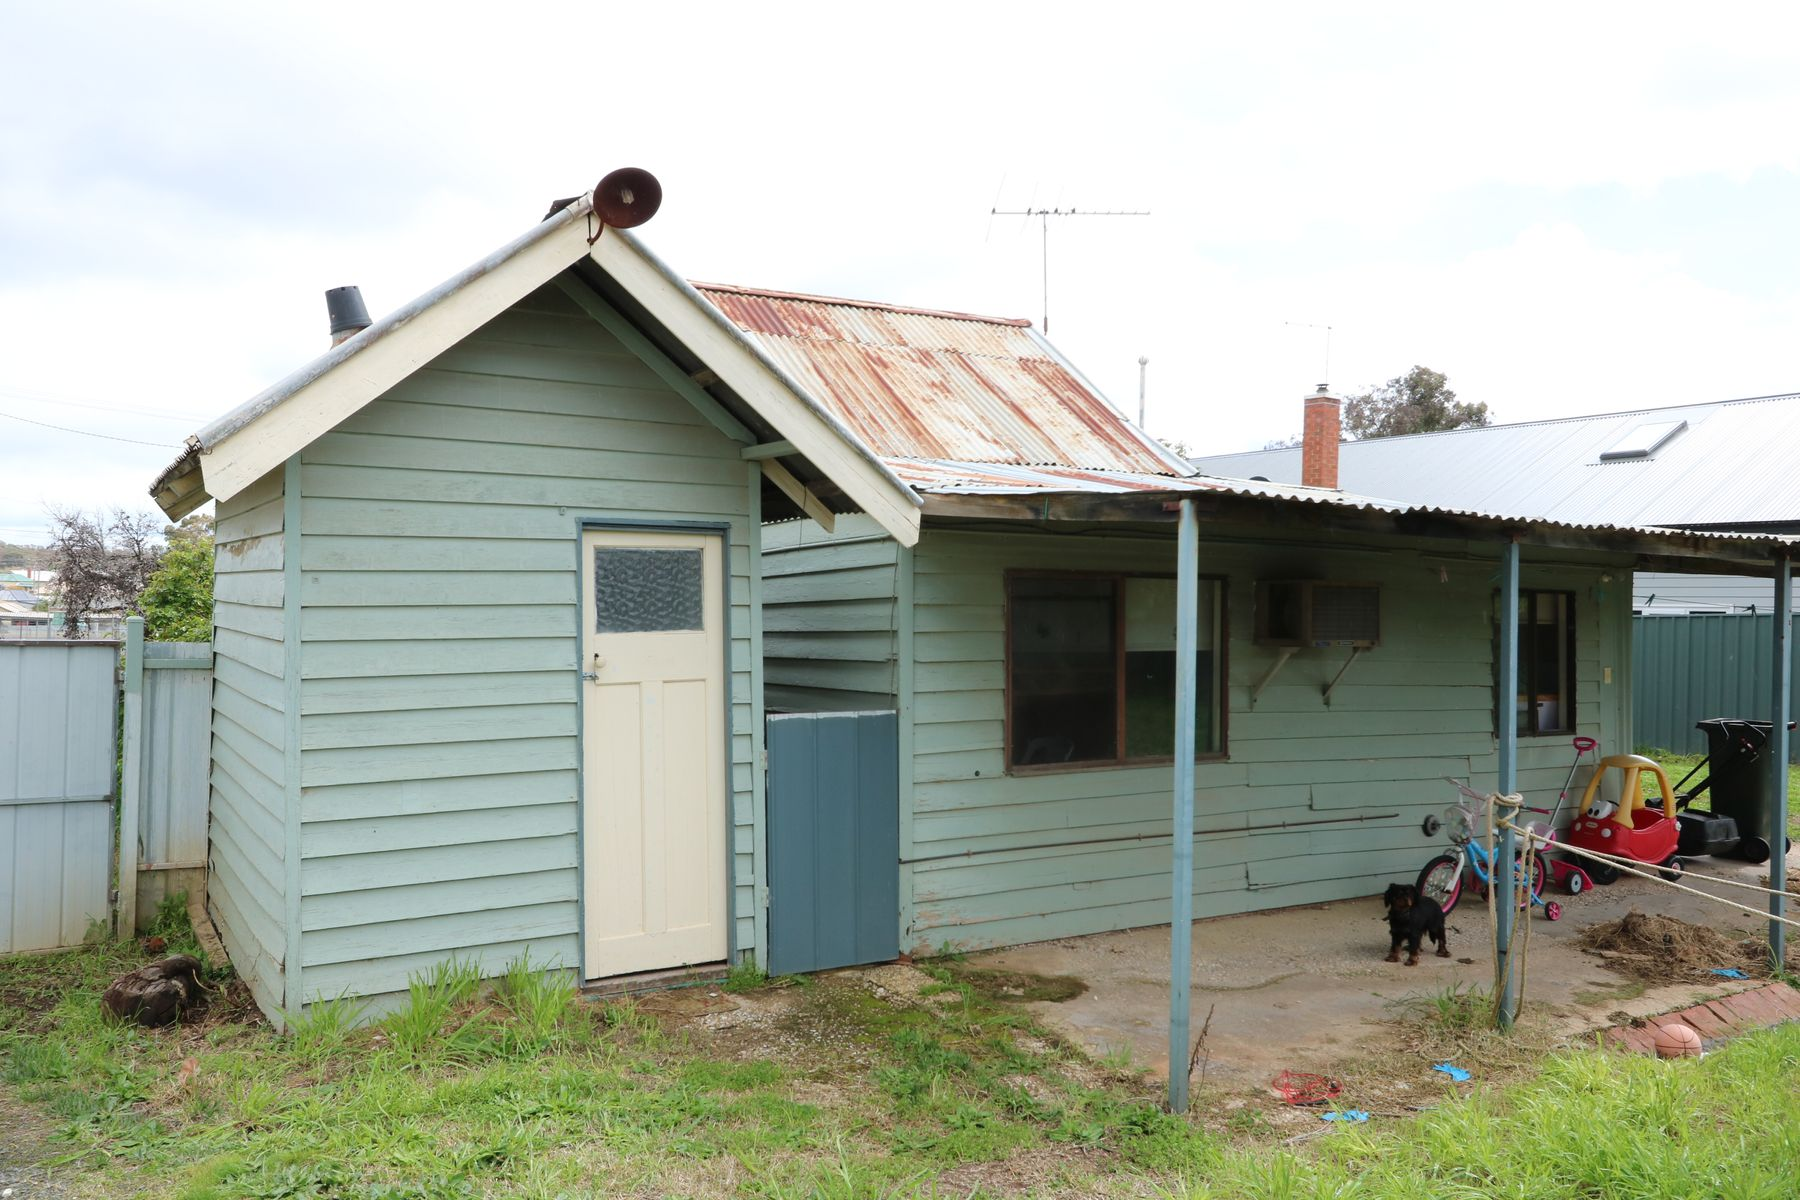 176 Railway Street, Maryborough, VIC 3465